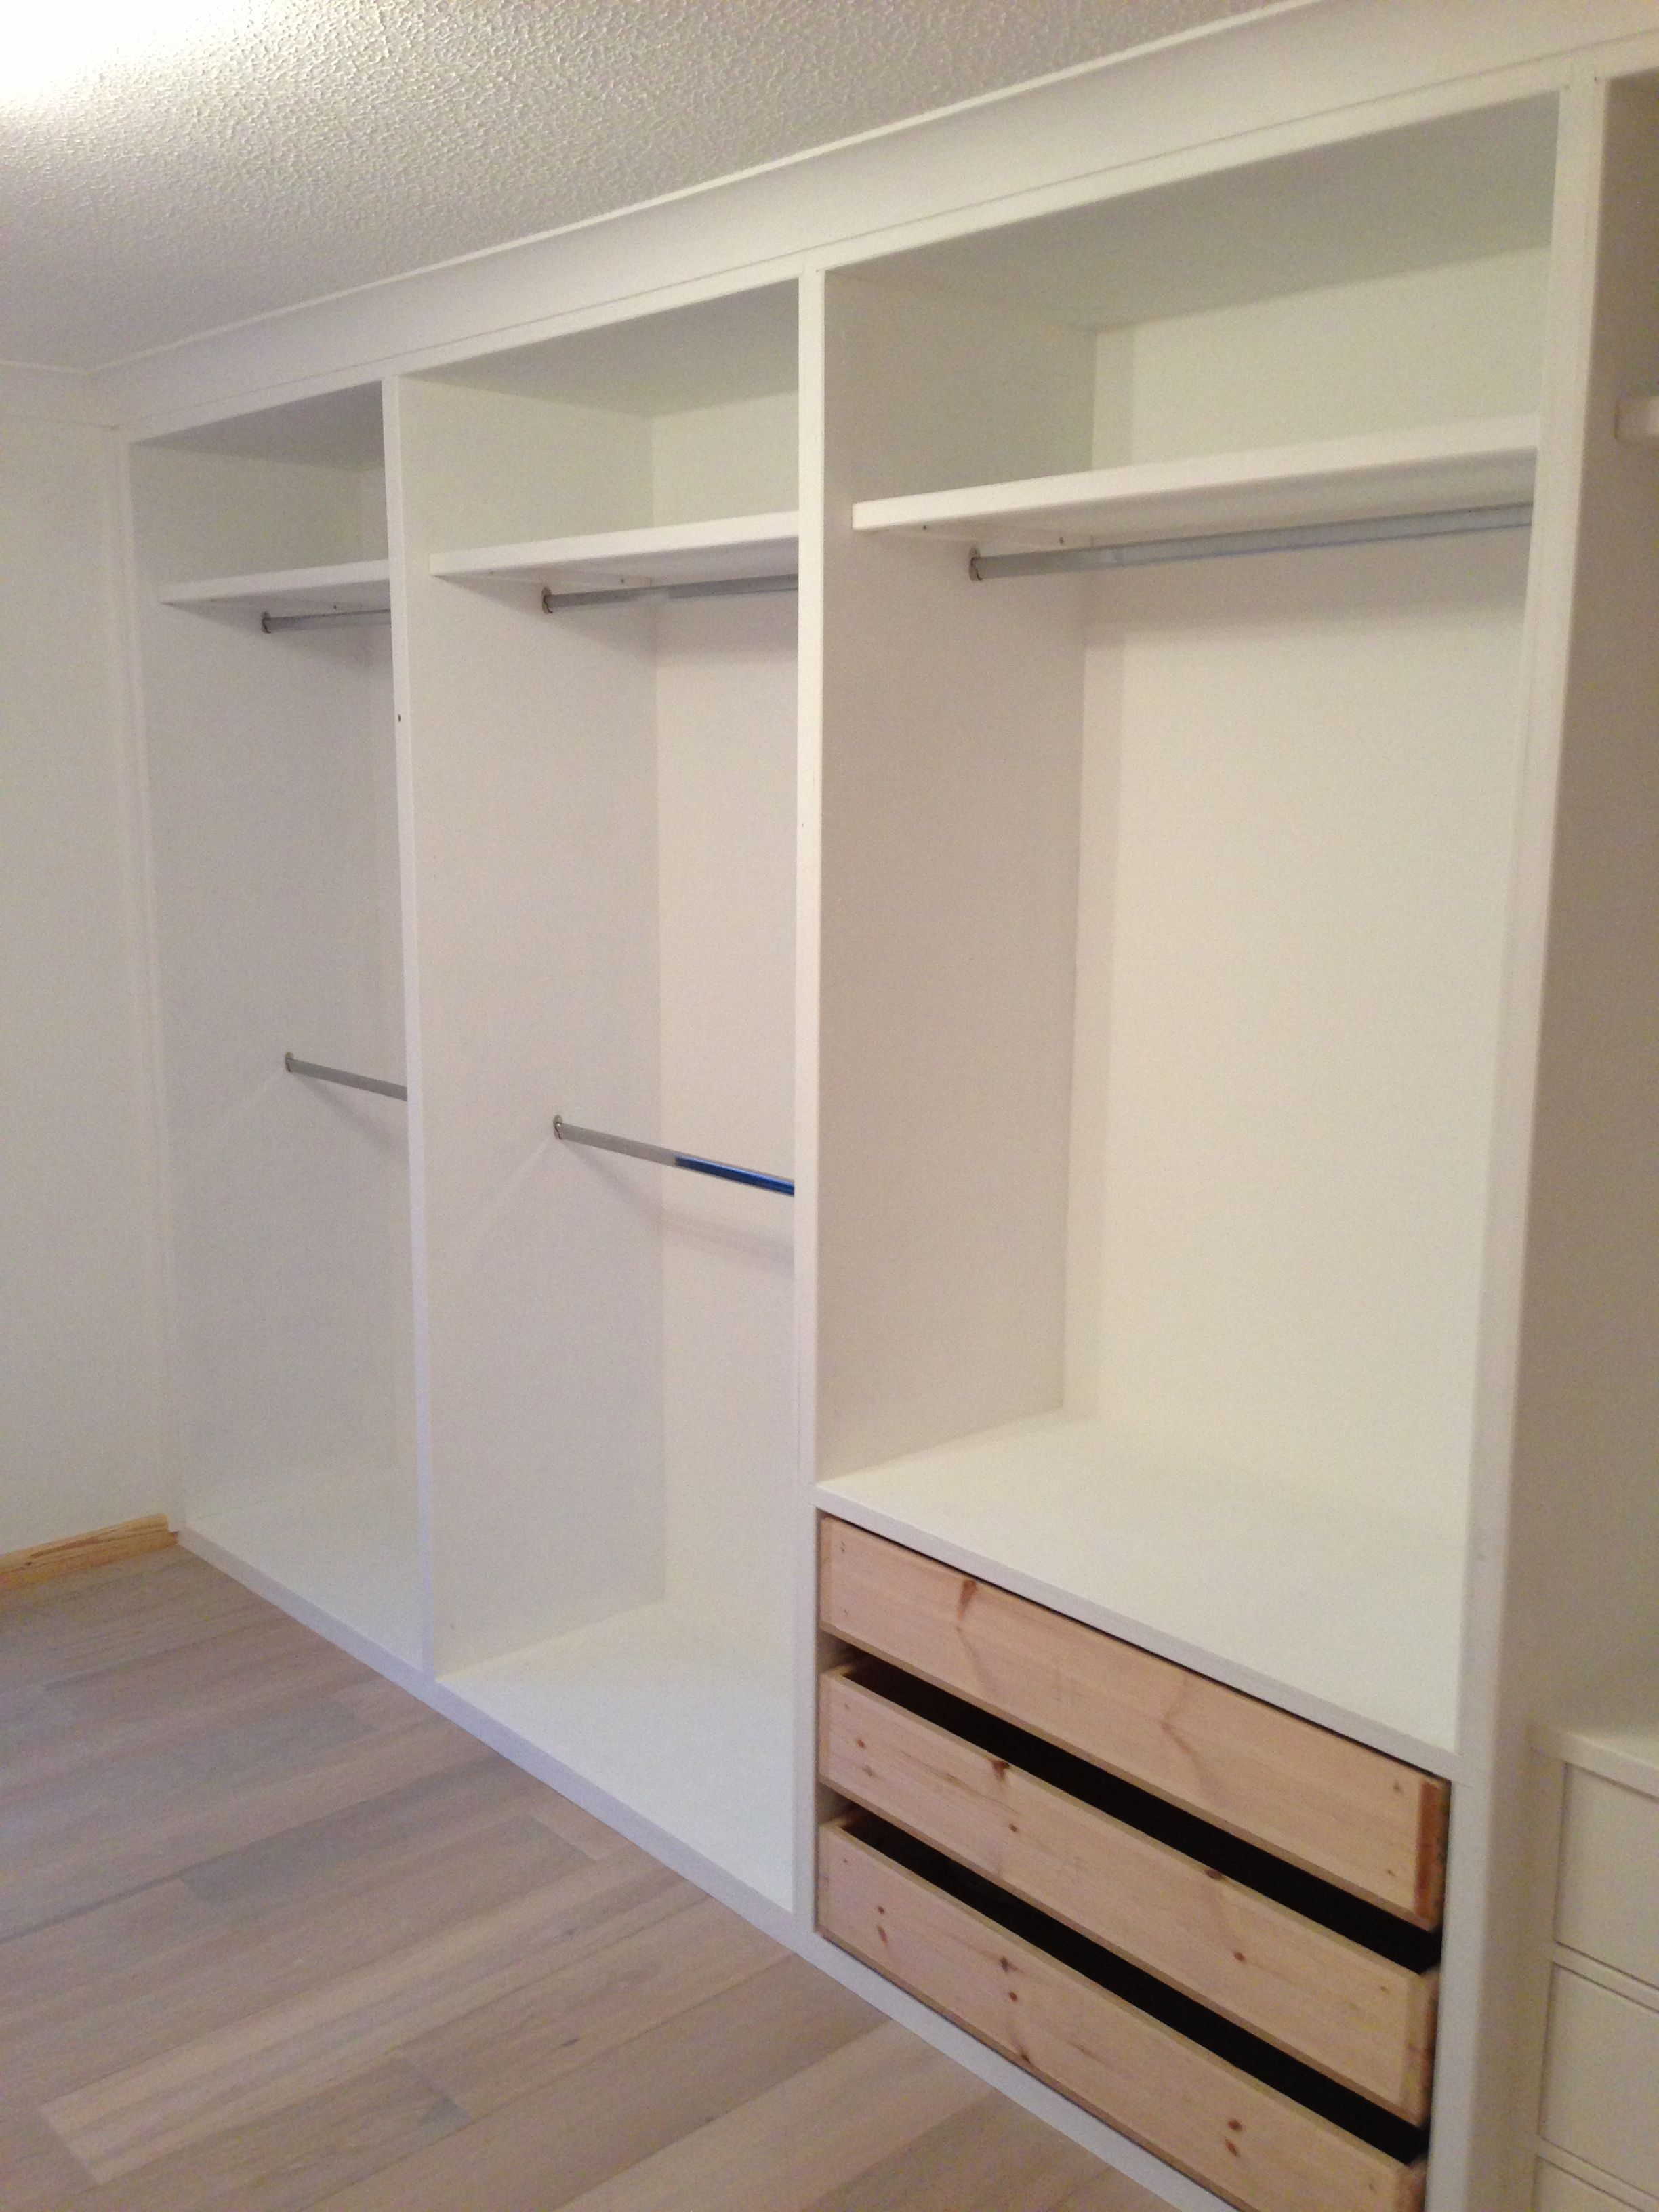 Ex also new walk in closet ideas and designs that you must know rh pinterest